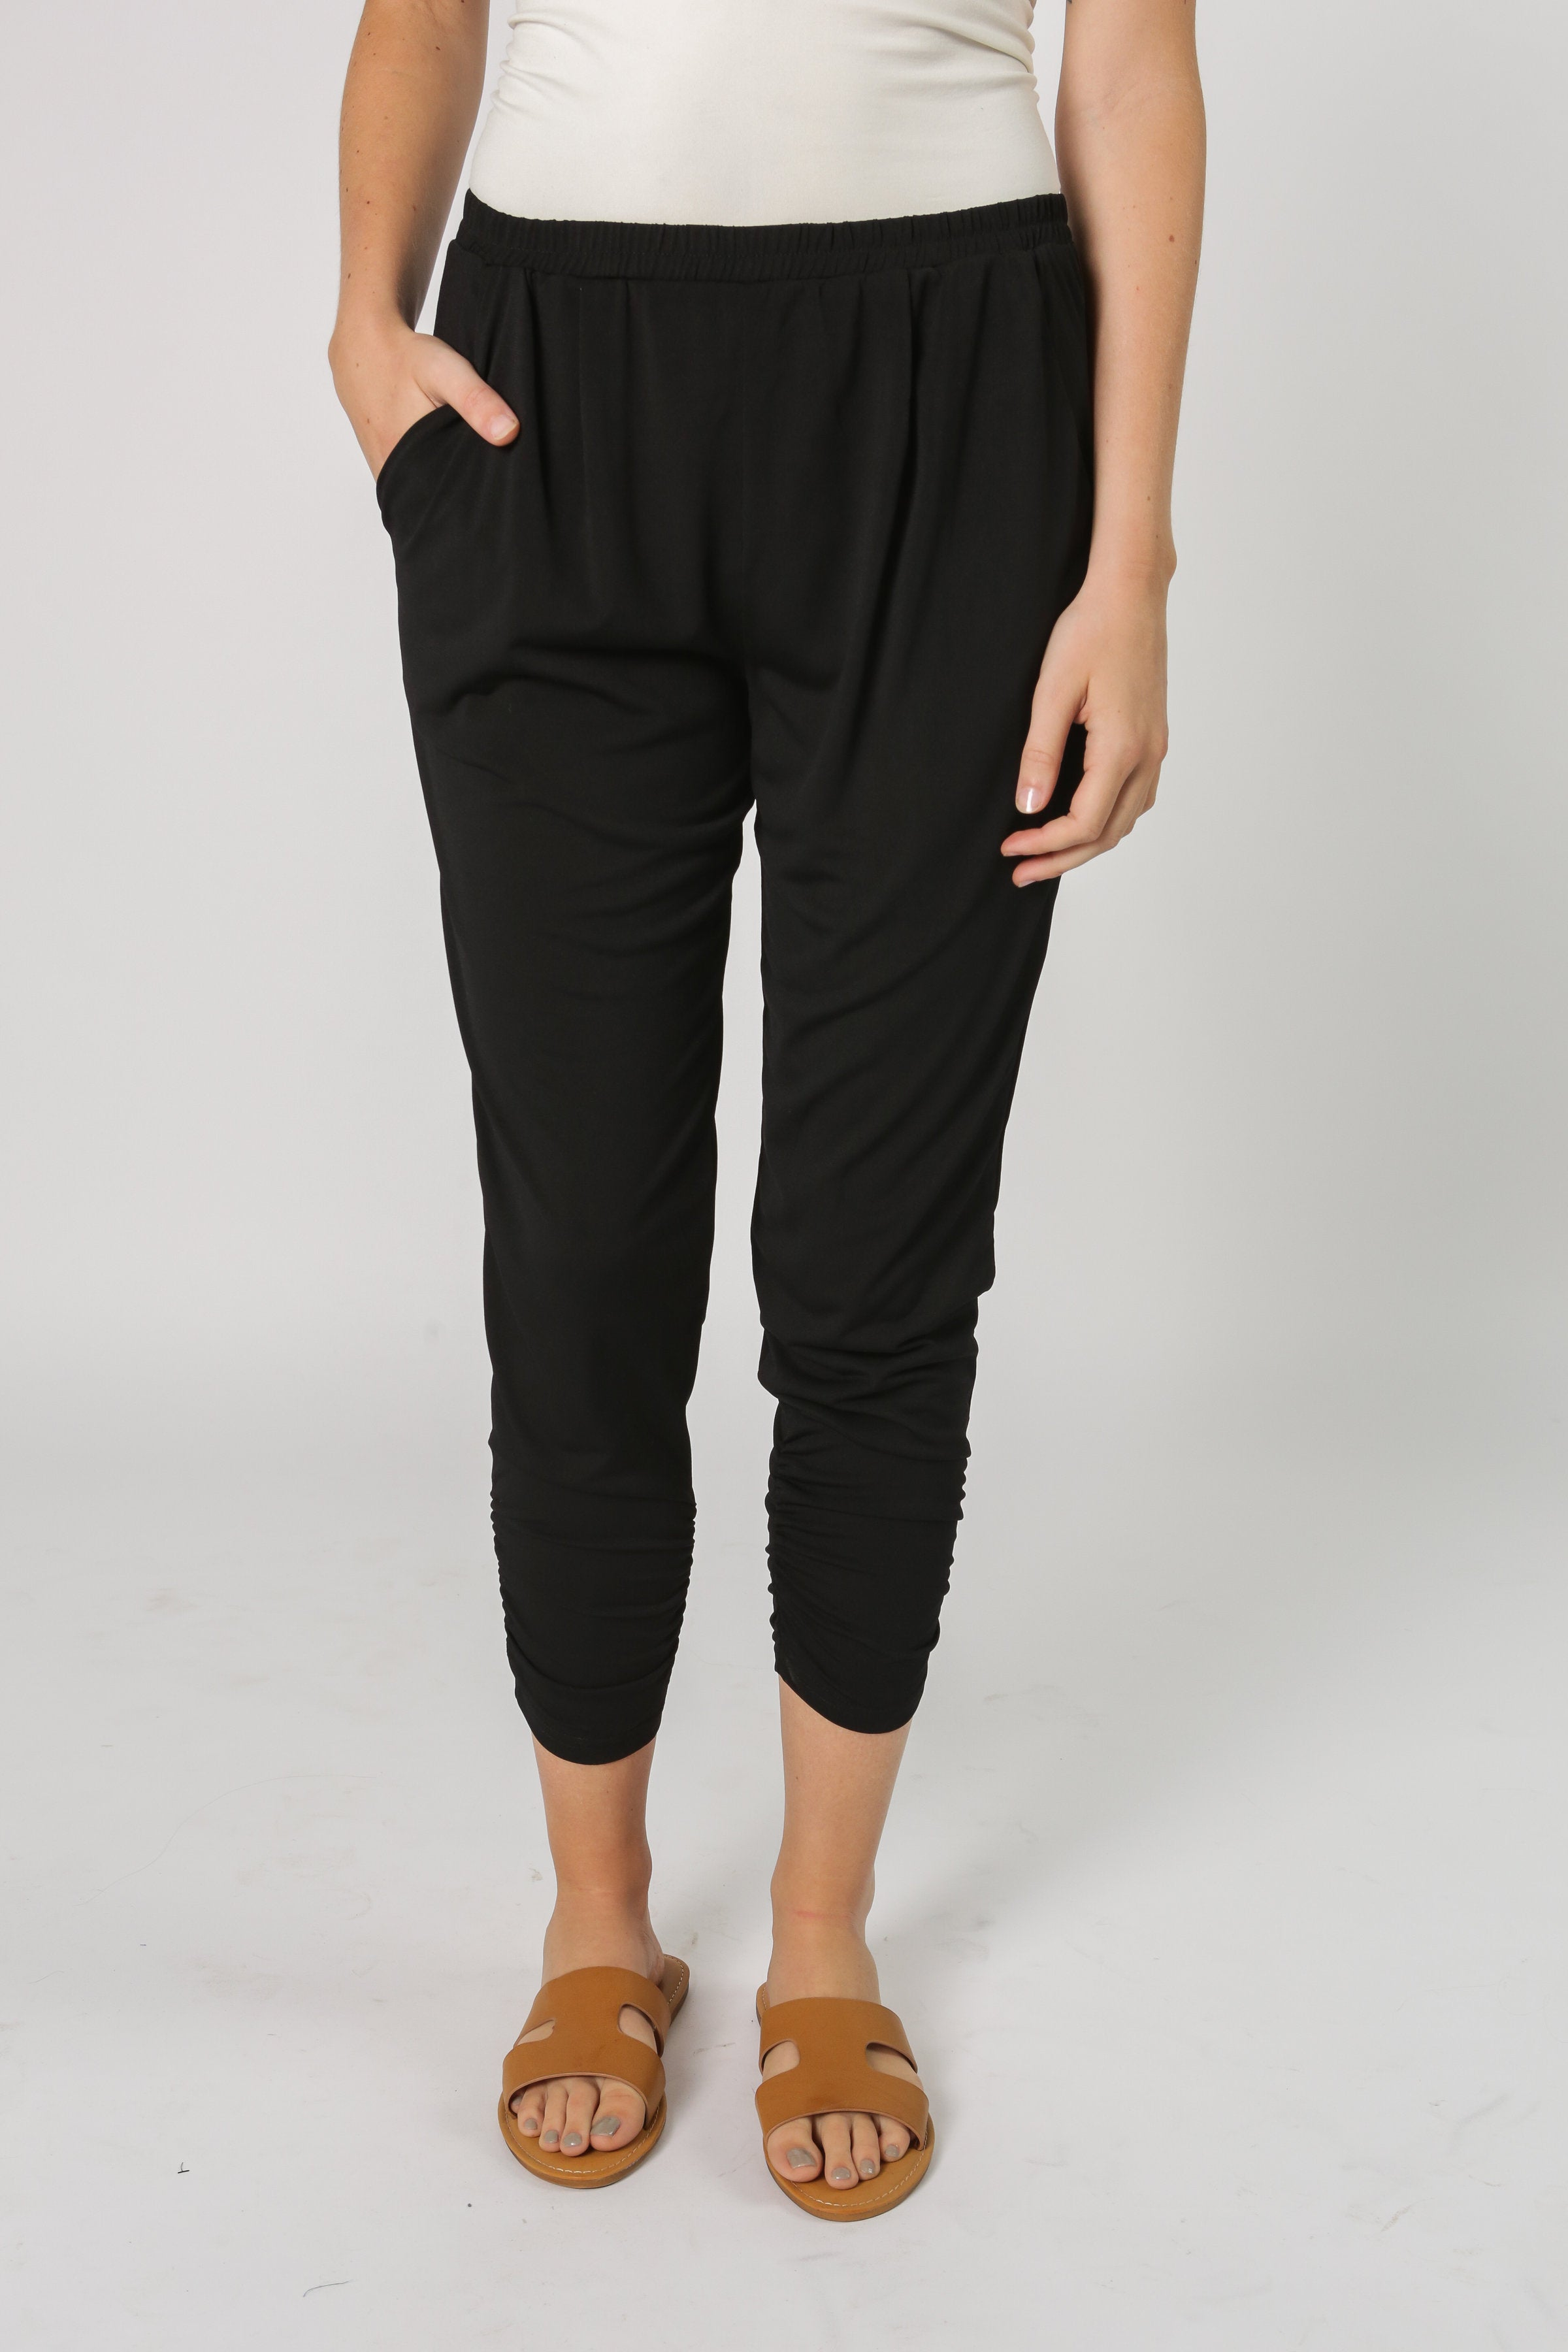 Bethany Pants - Black